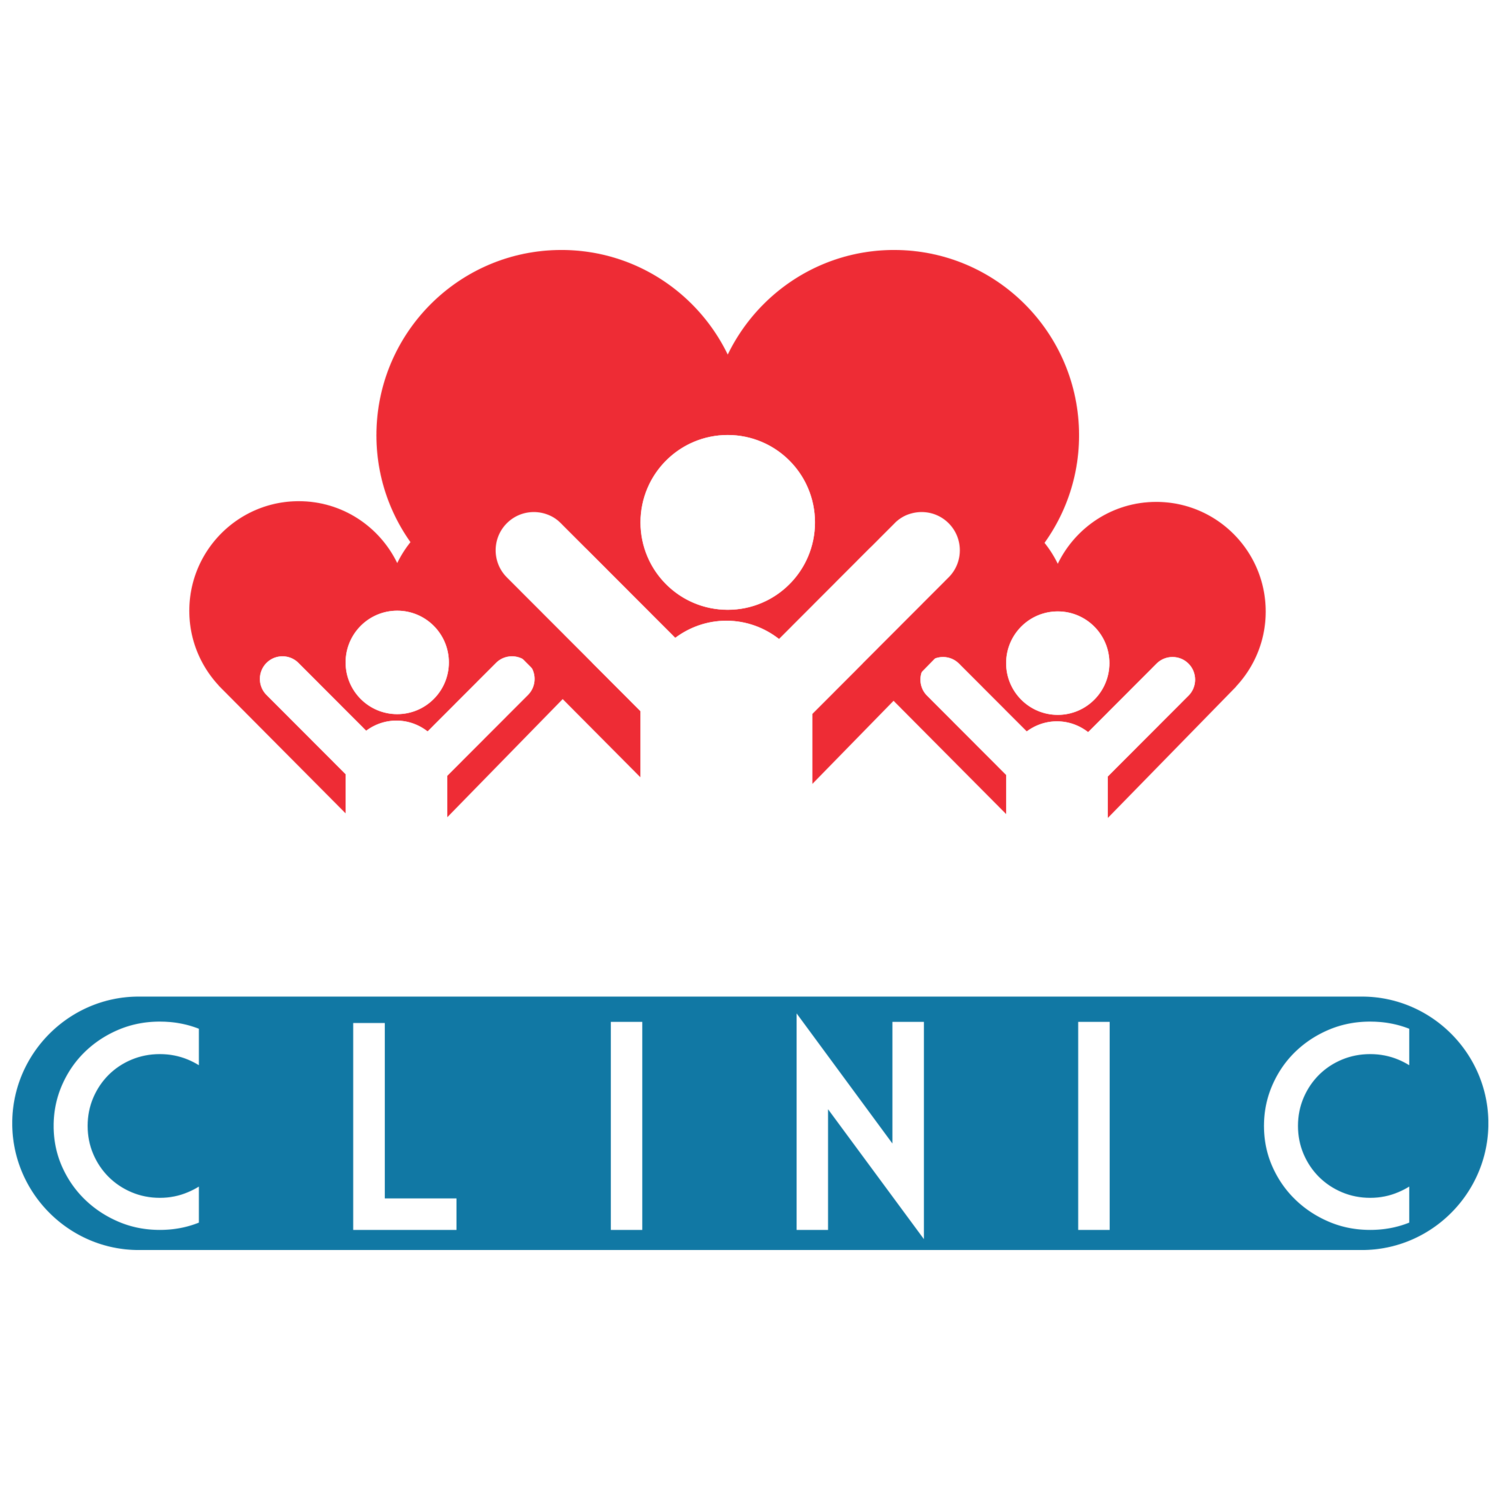 Babies & Children's Clinic